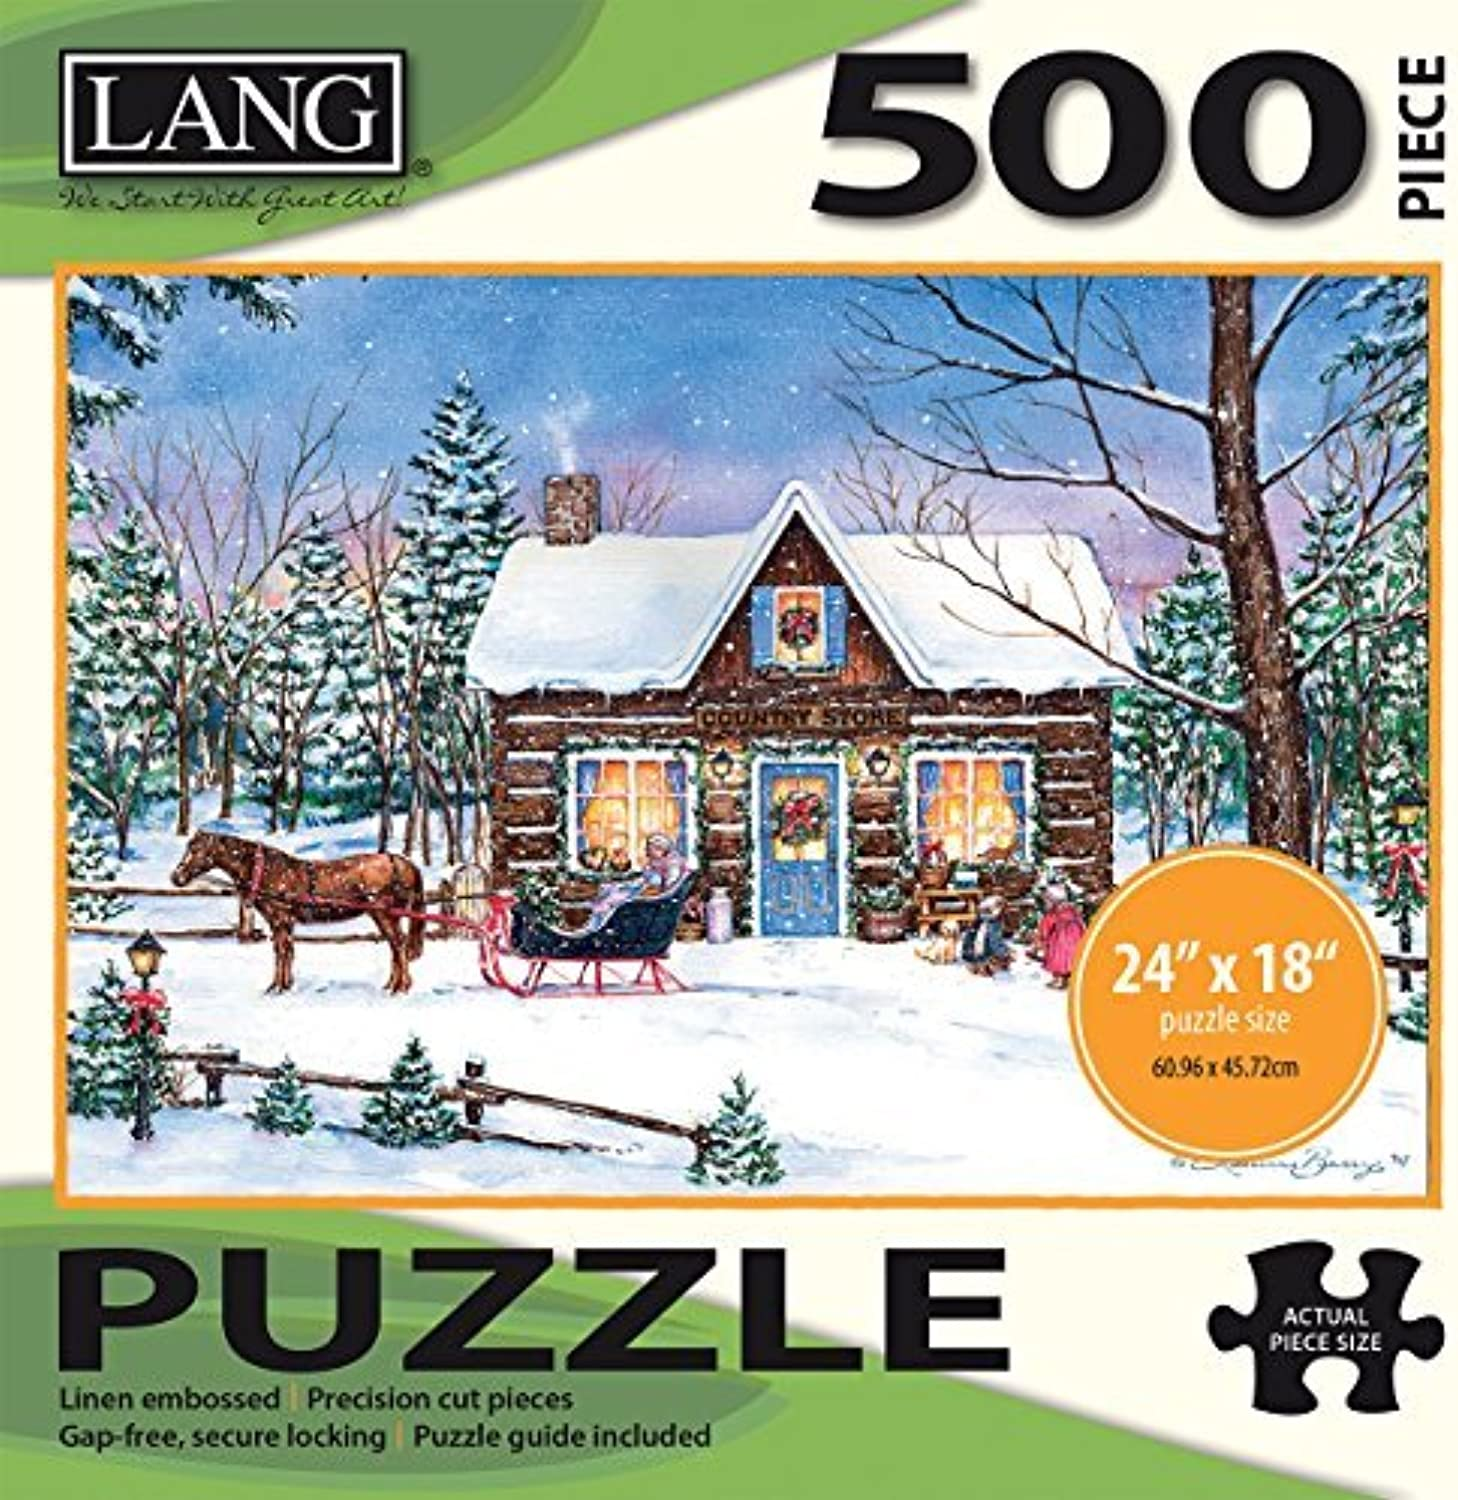 Lang Magical Evening Puzzle (500 Piece) by Perfect Timing Puzzles